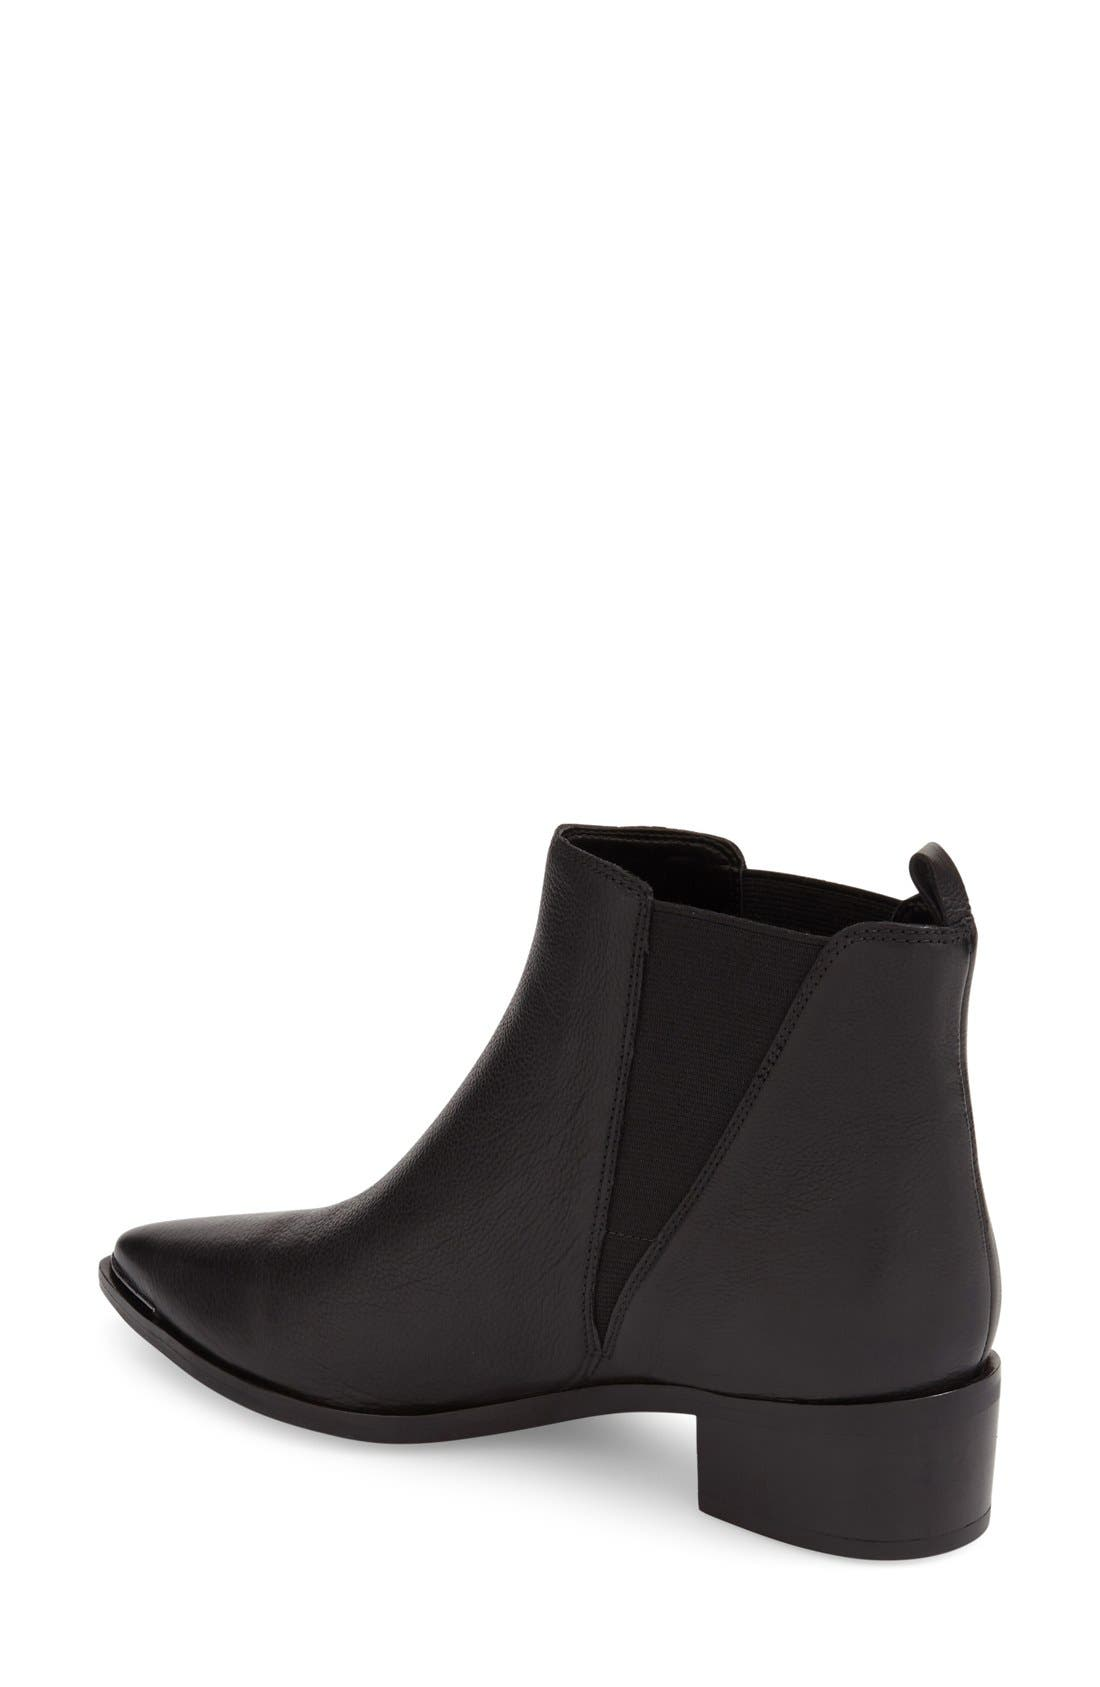 'Yale' Chelsea Boot,                             Alternate thumbnail 2, color,                             Black Leather